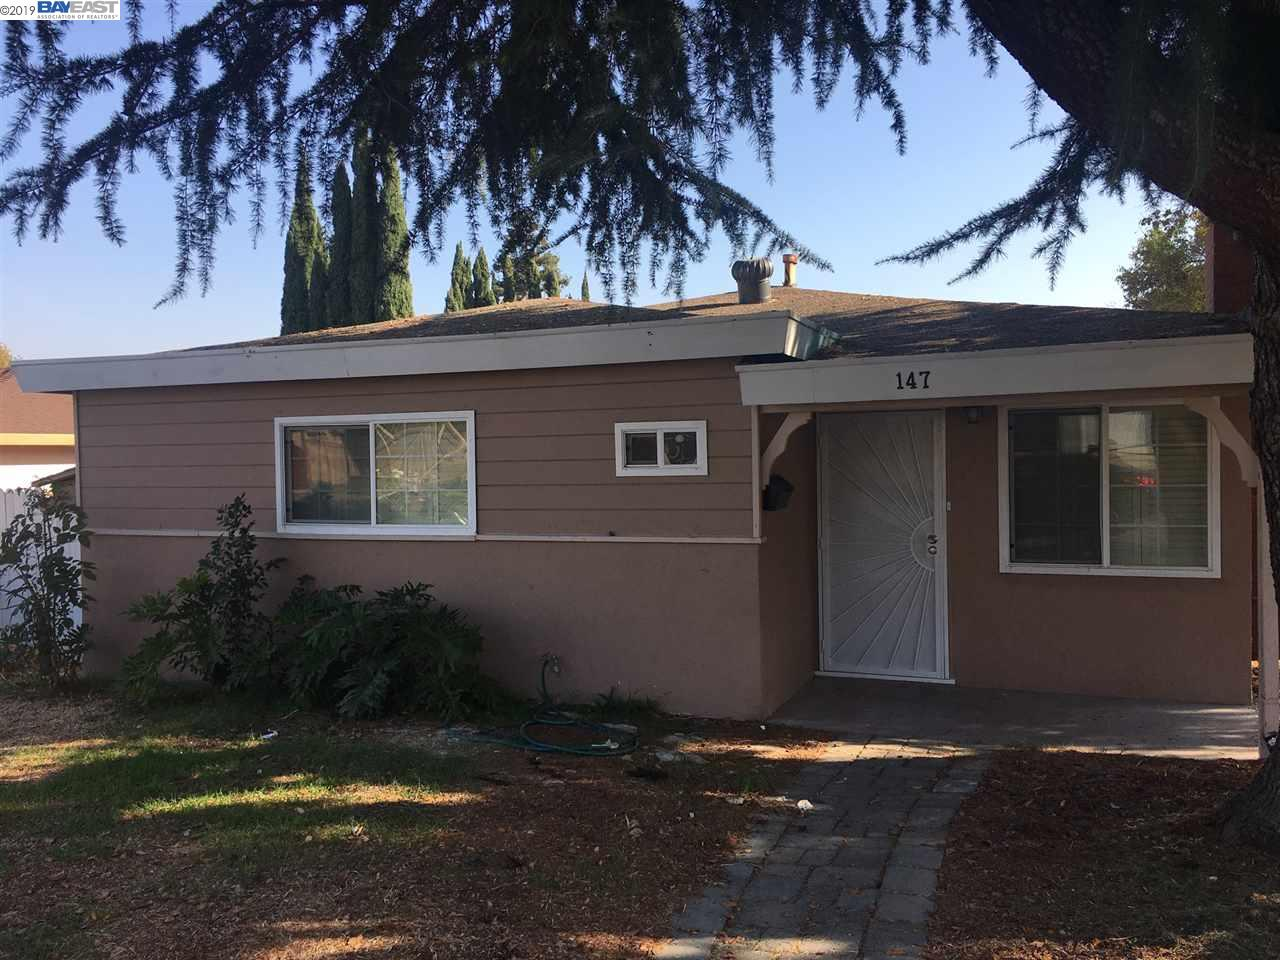 147 Riverview Dr Pittsburg, CA 94565